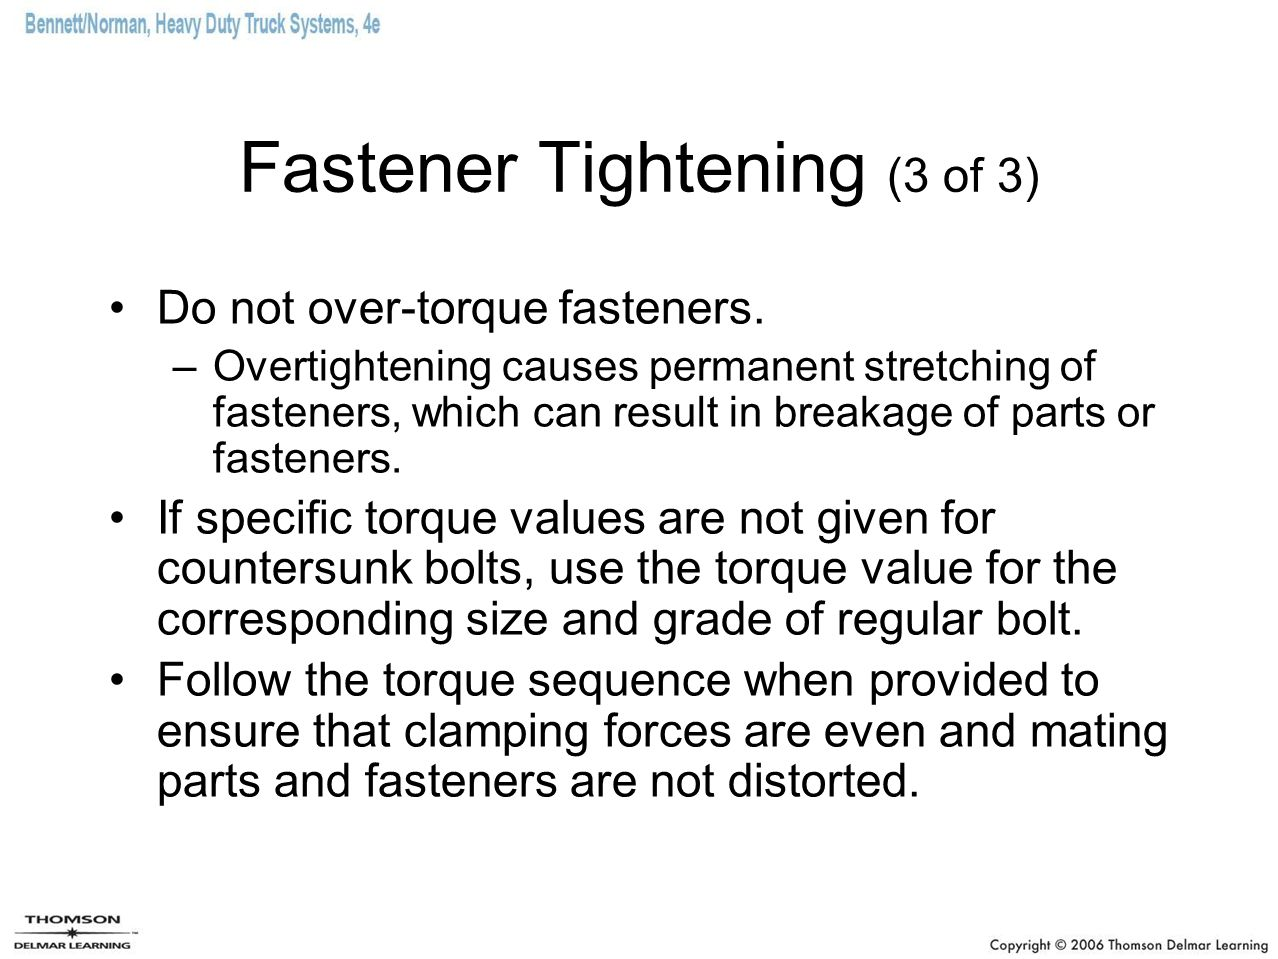 Fastener Tightening (3 of 3)